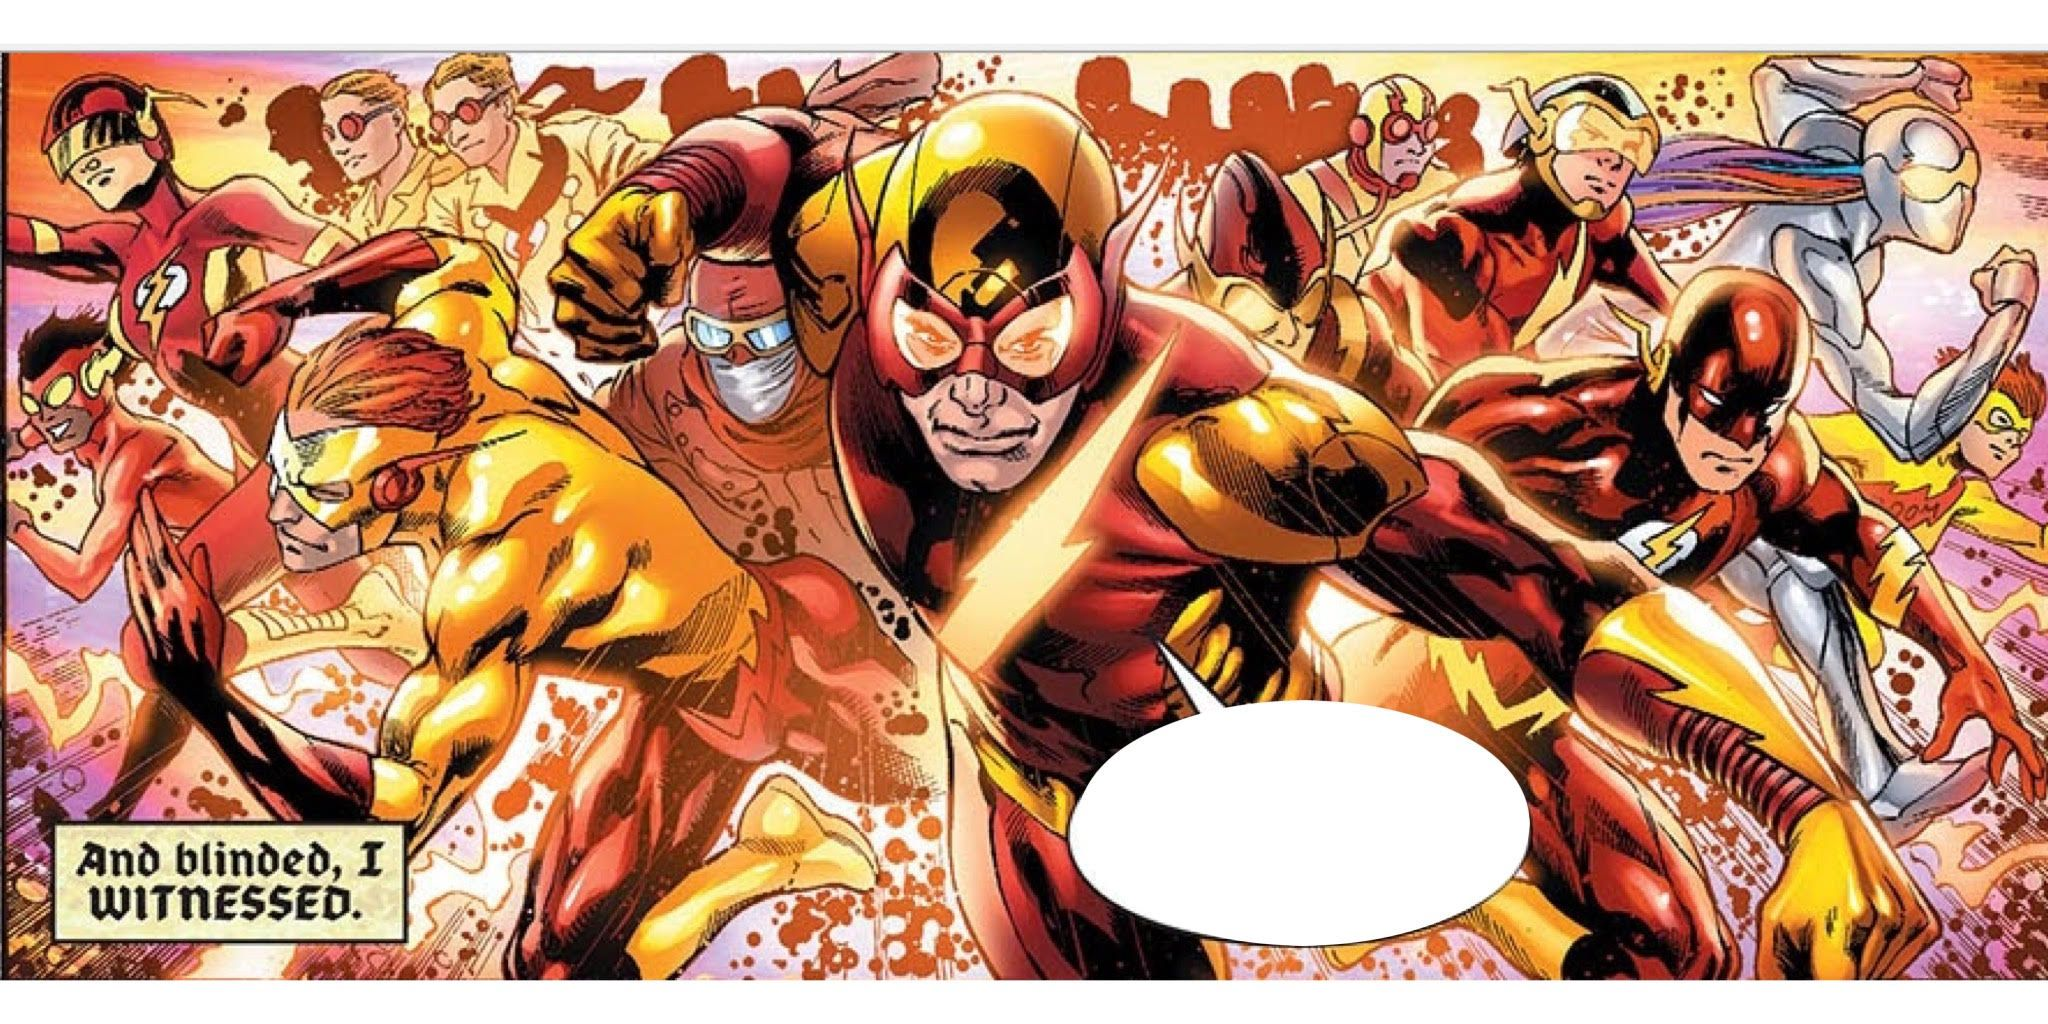 Ranked: 10 Alternate Versions Of The Flash (That Aren't Barry Allen Or Wally West)